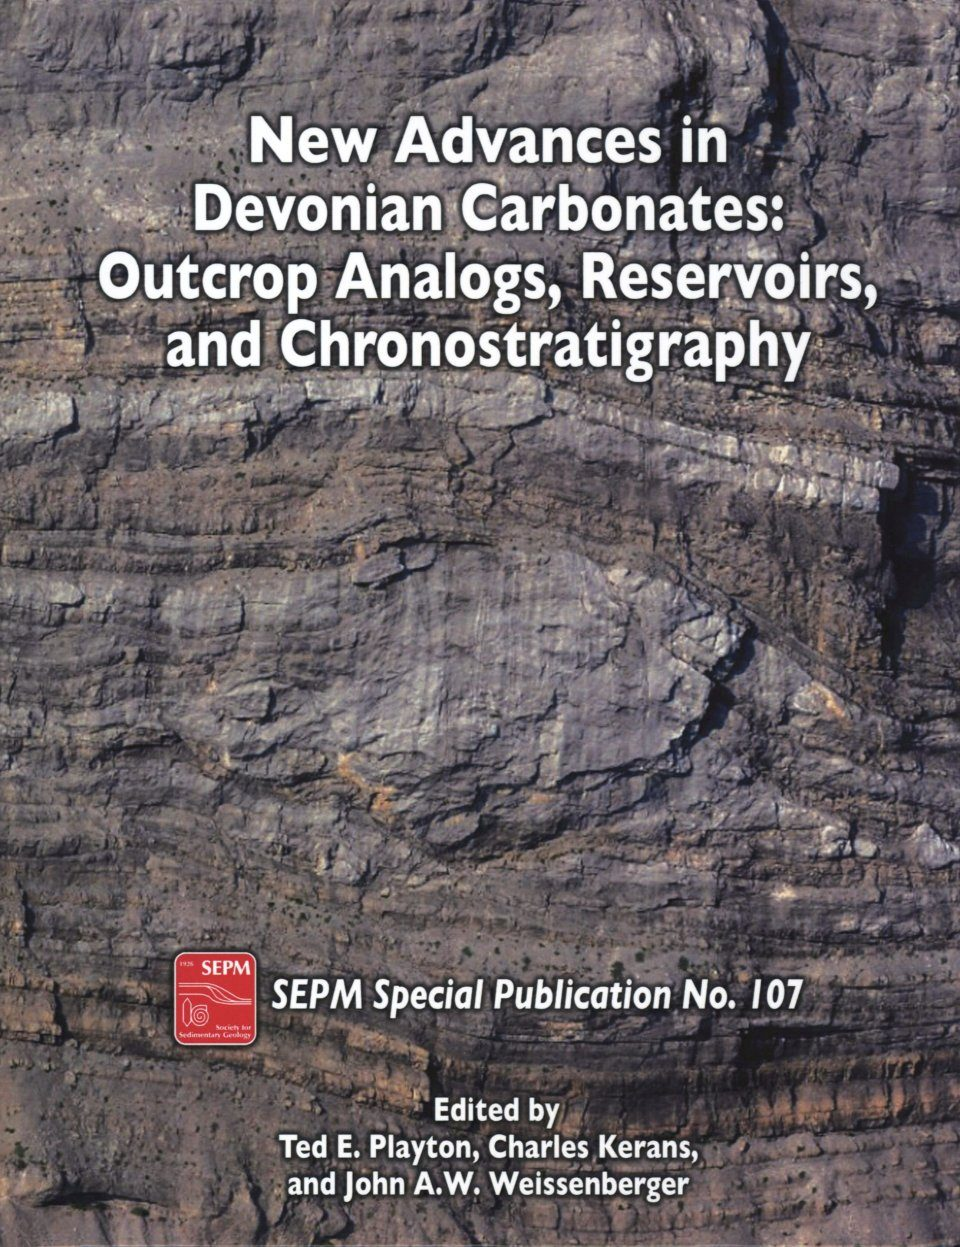 New Advances in Devonian Carbonates